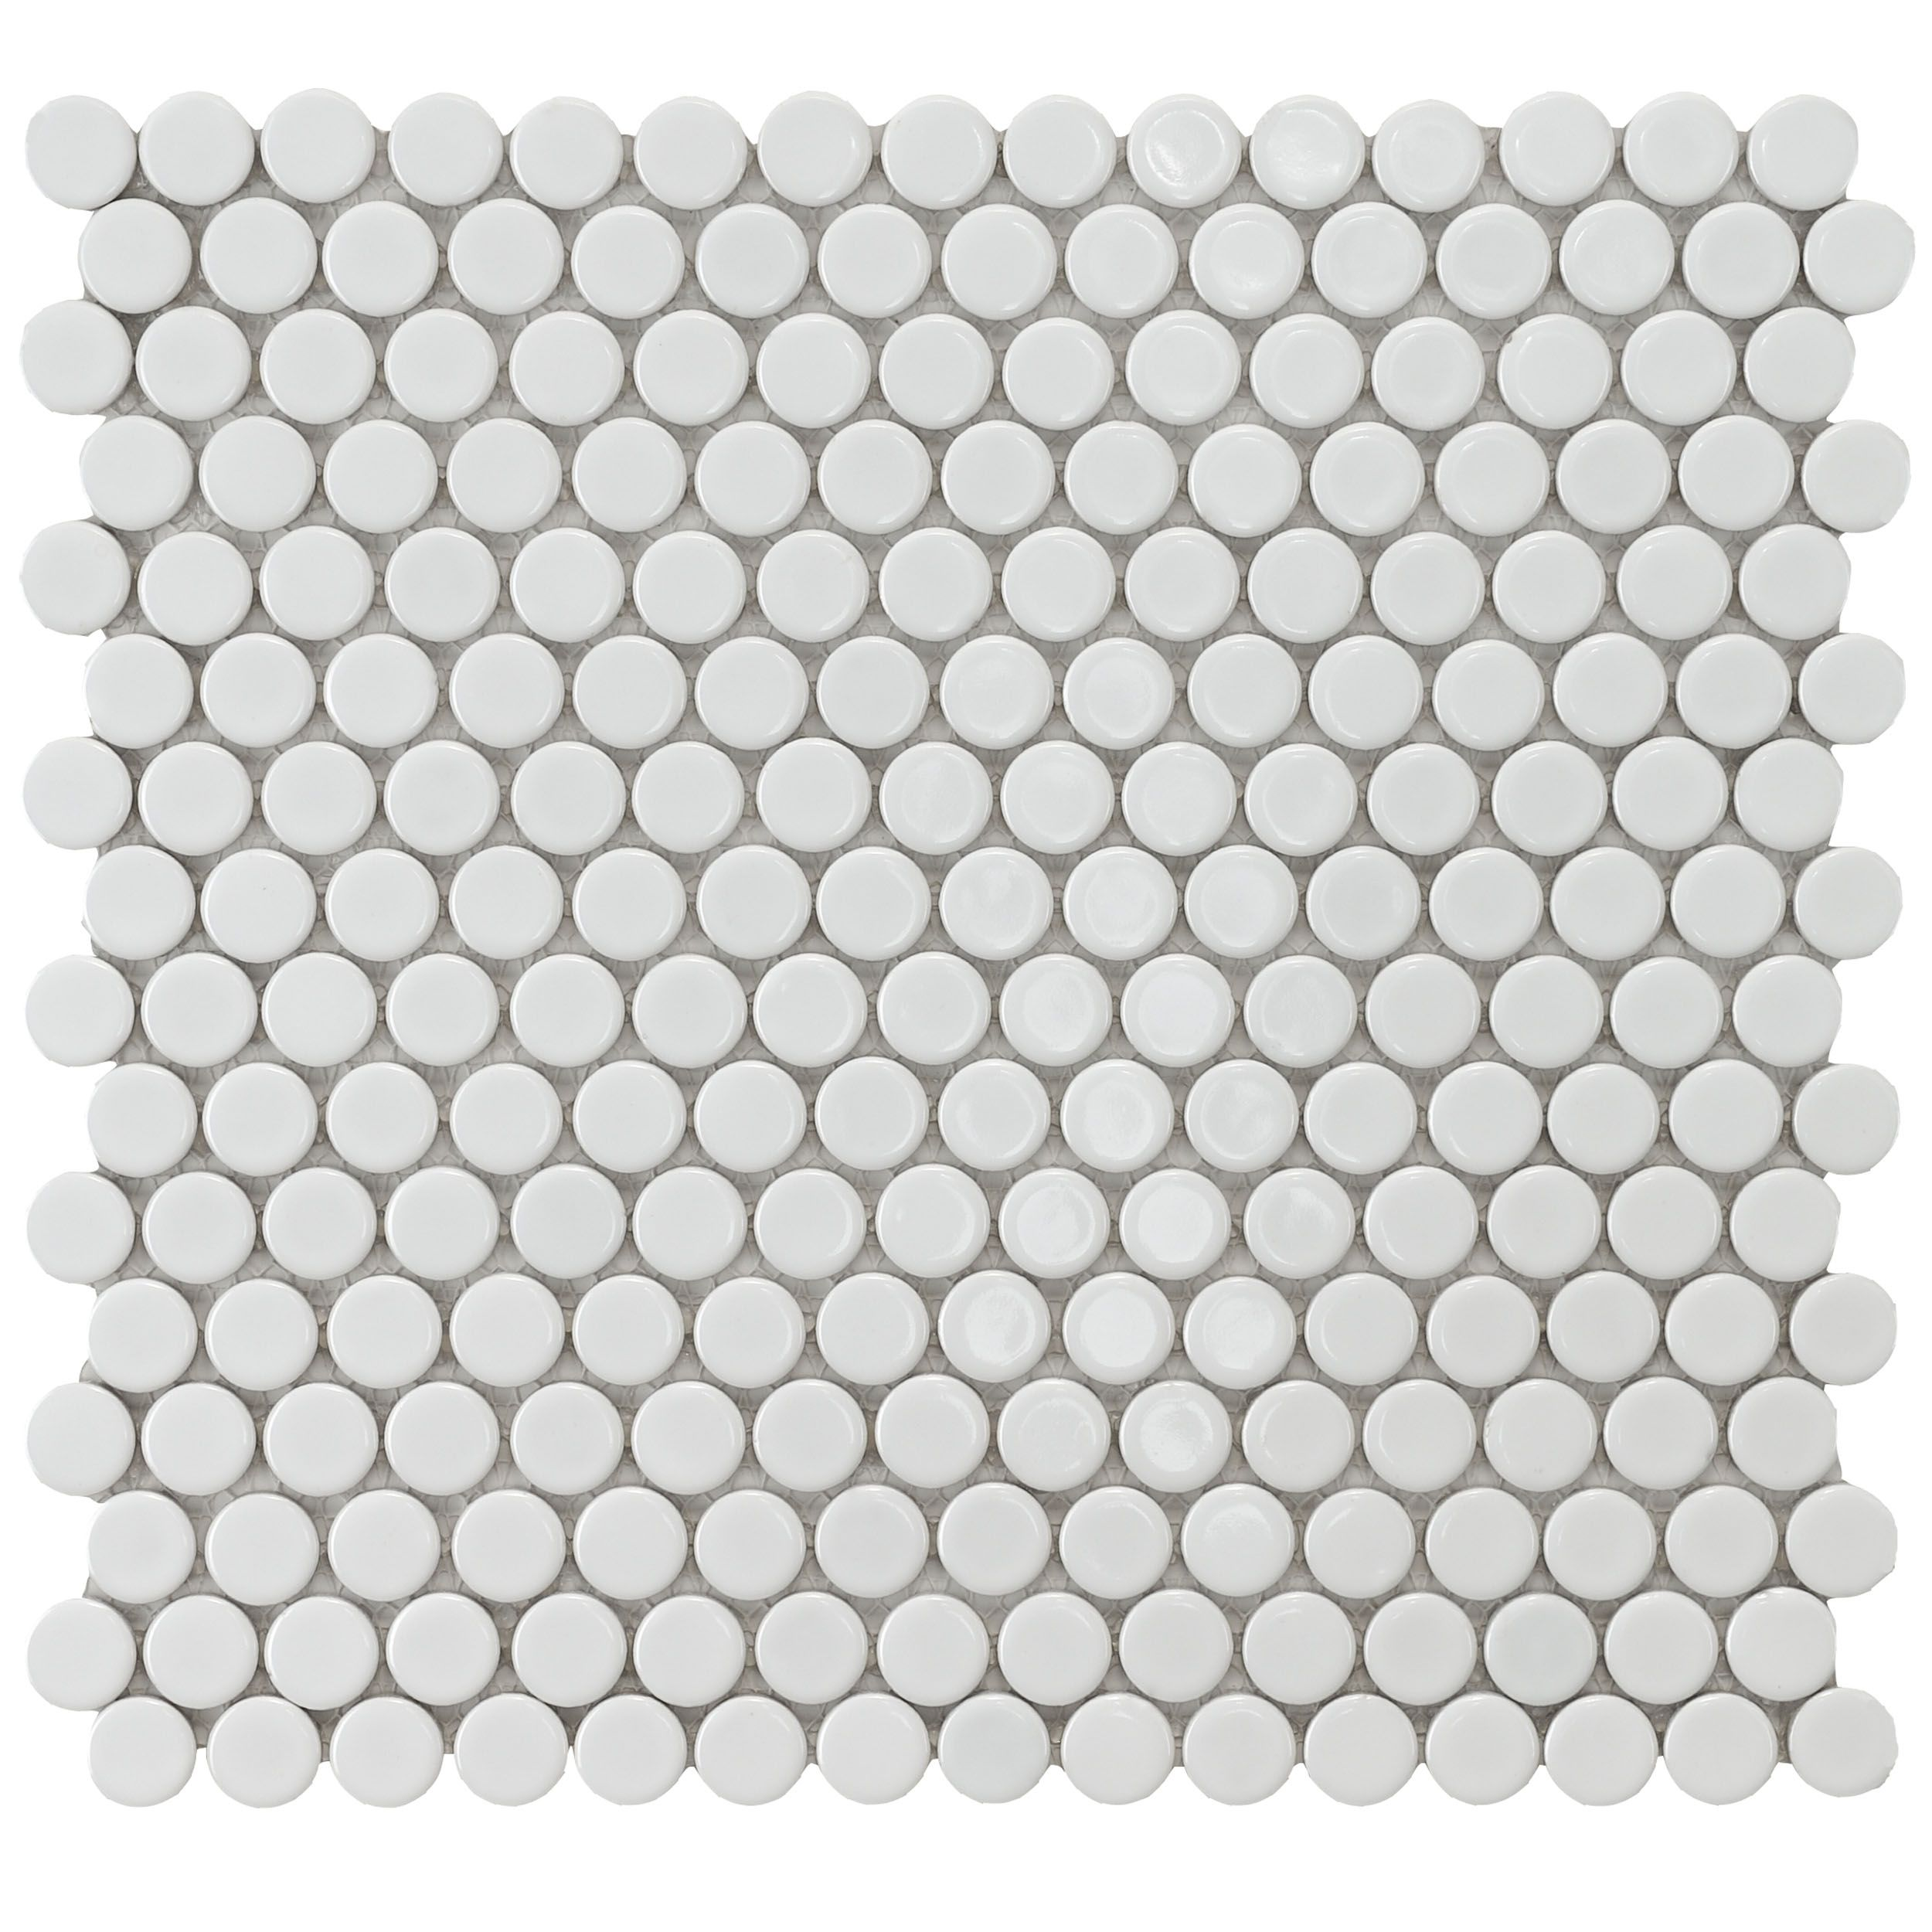 Merola Tile Penny Round White Porcelain Mesh Mounted Mosaic Traditional Floor Tiles Home Depot